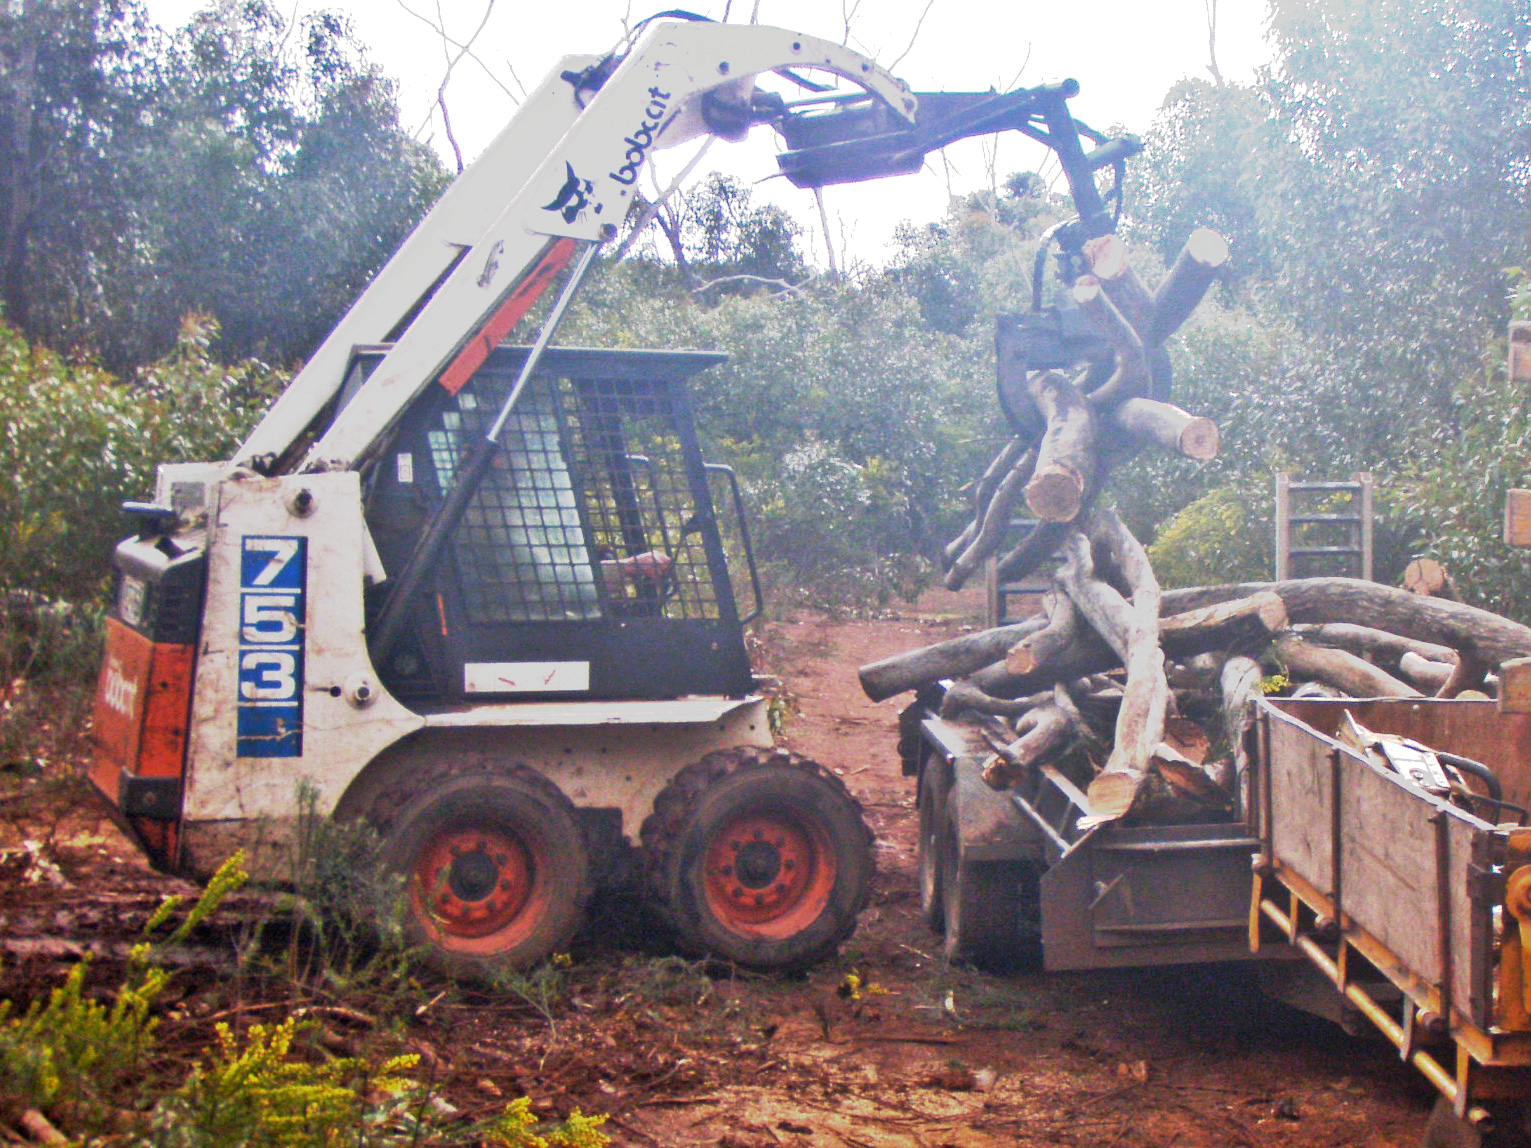 Skid Steer Grapples Skid Steer Grapple Log Skidder